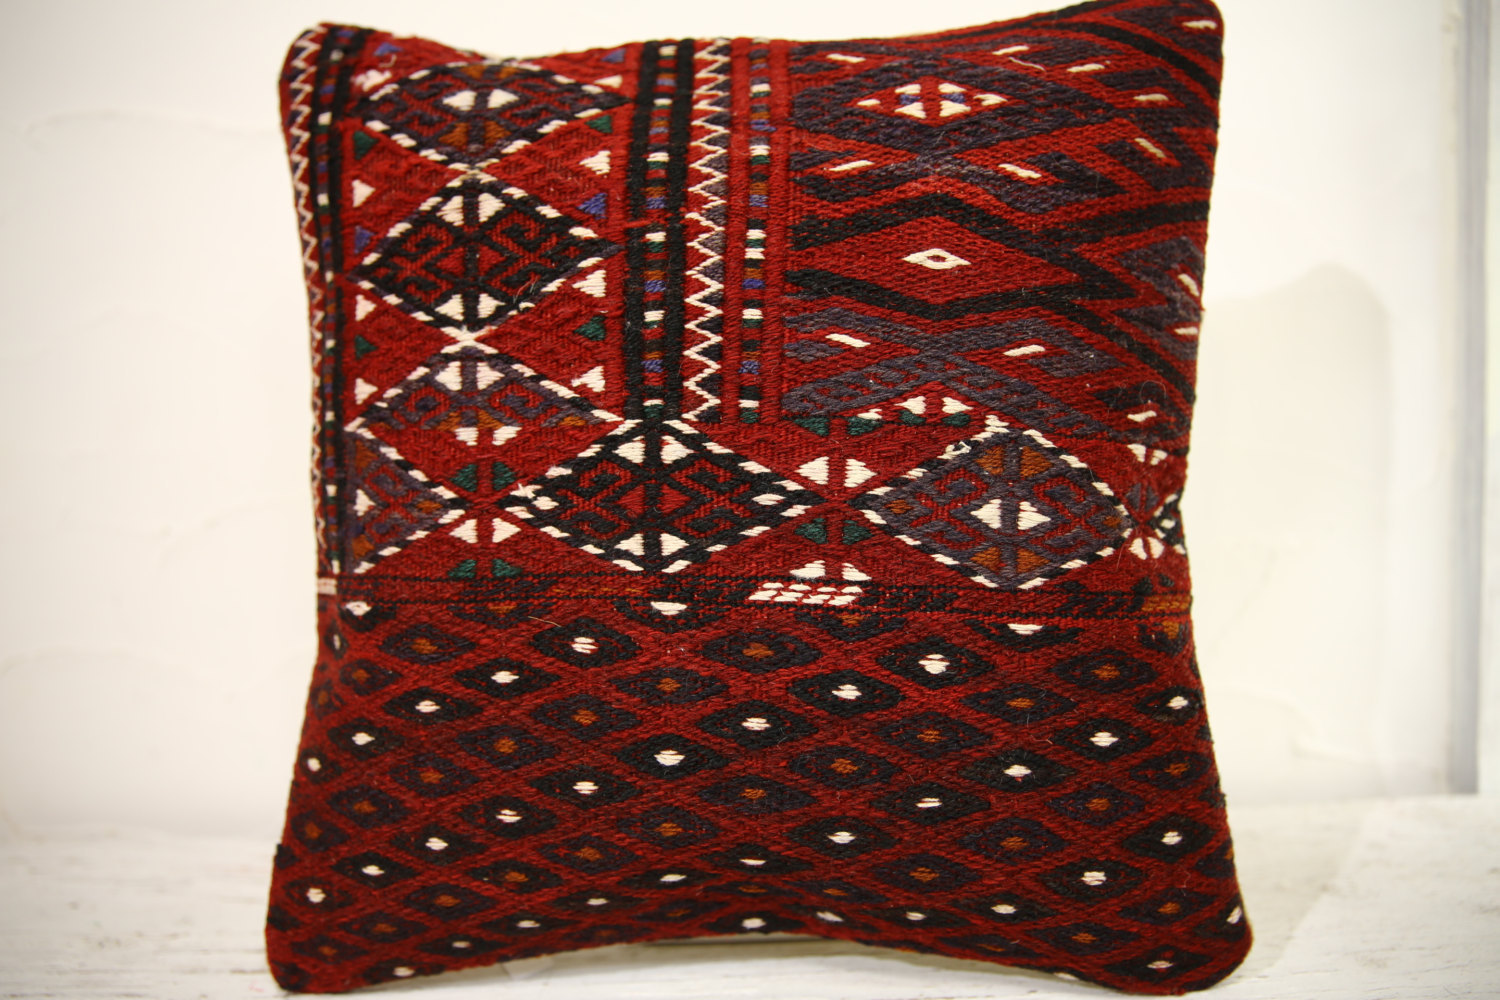 Kilim Pillows | 16x16 | Decorative Pillows | 909 | Accent Pillows,turkish pillow